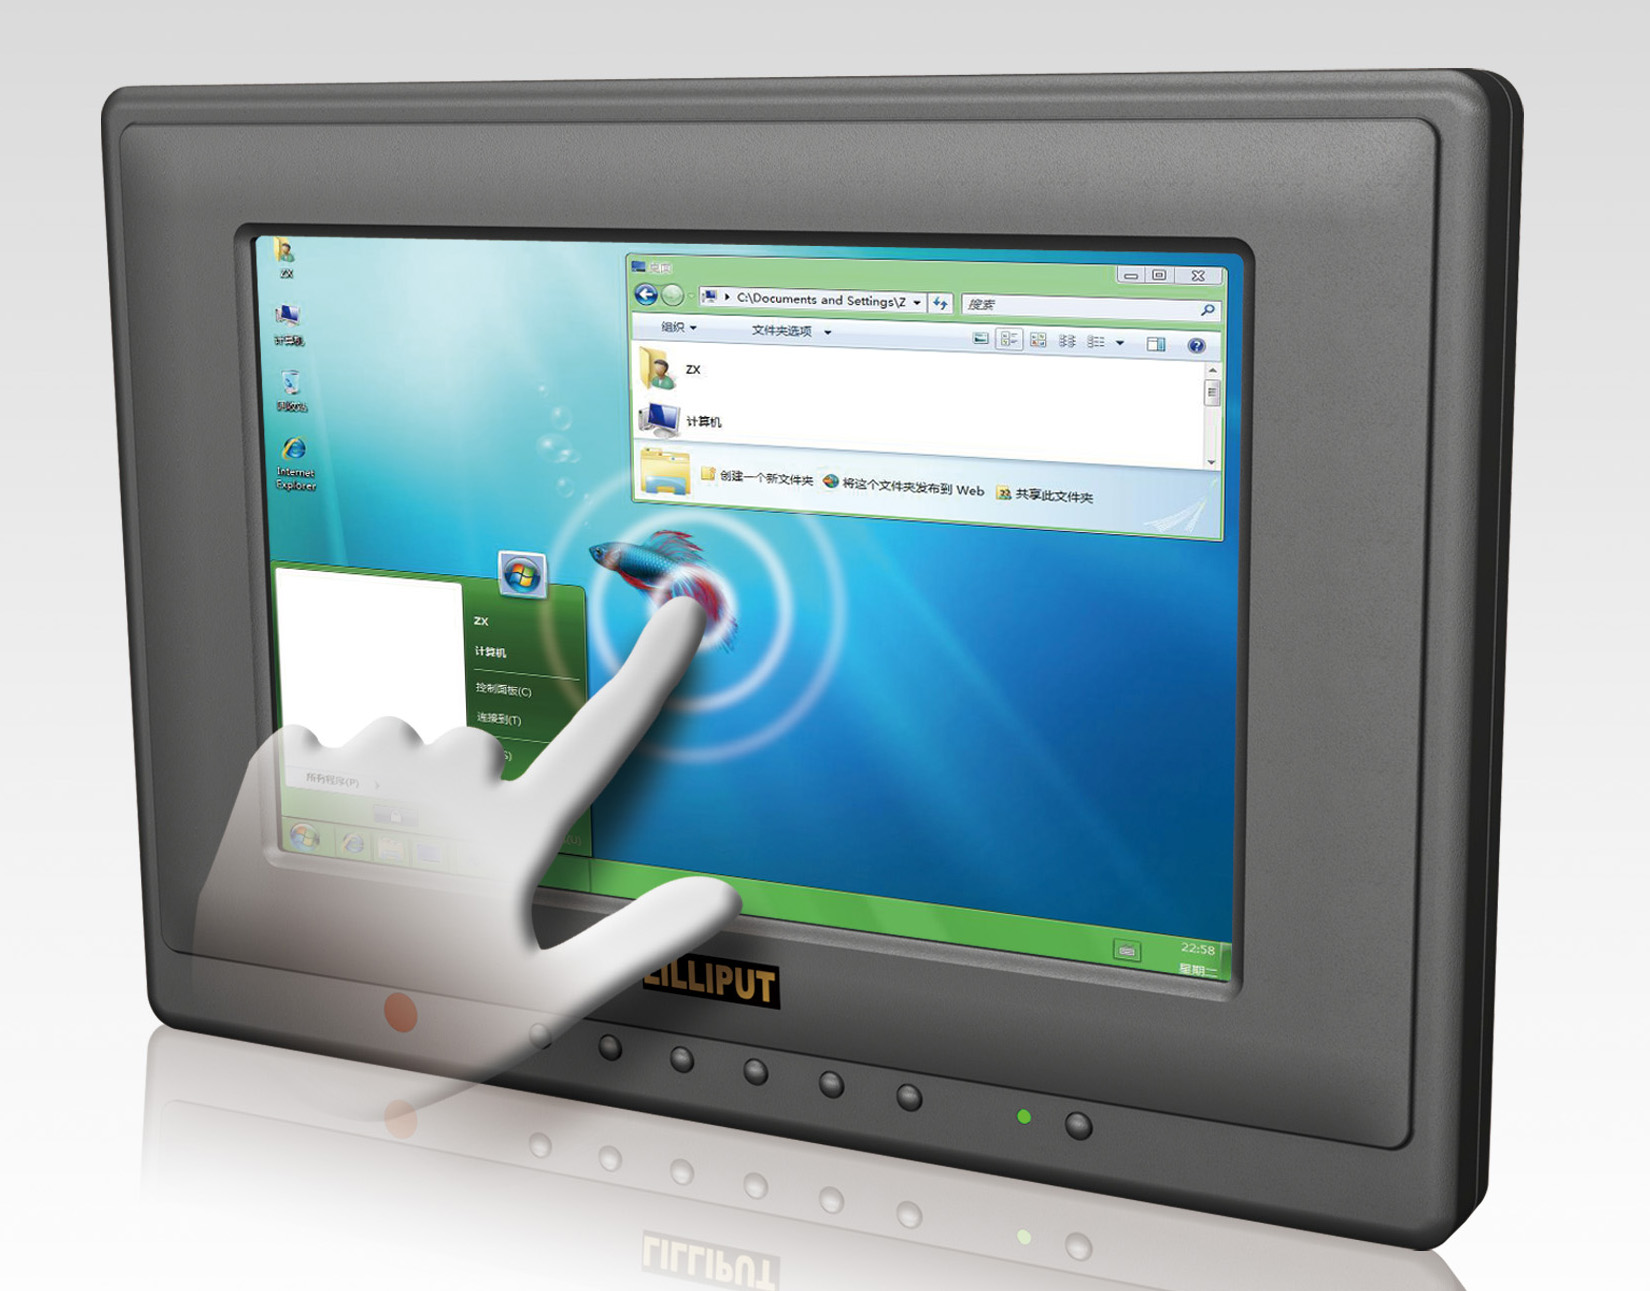 Lilliput Europe 659gl 70np C T 7 Inch Monitor With Surface Touch Screen Technology Working Acoustic Wave Hdmi And Vga